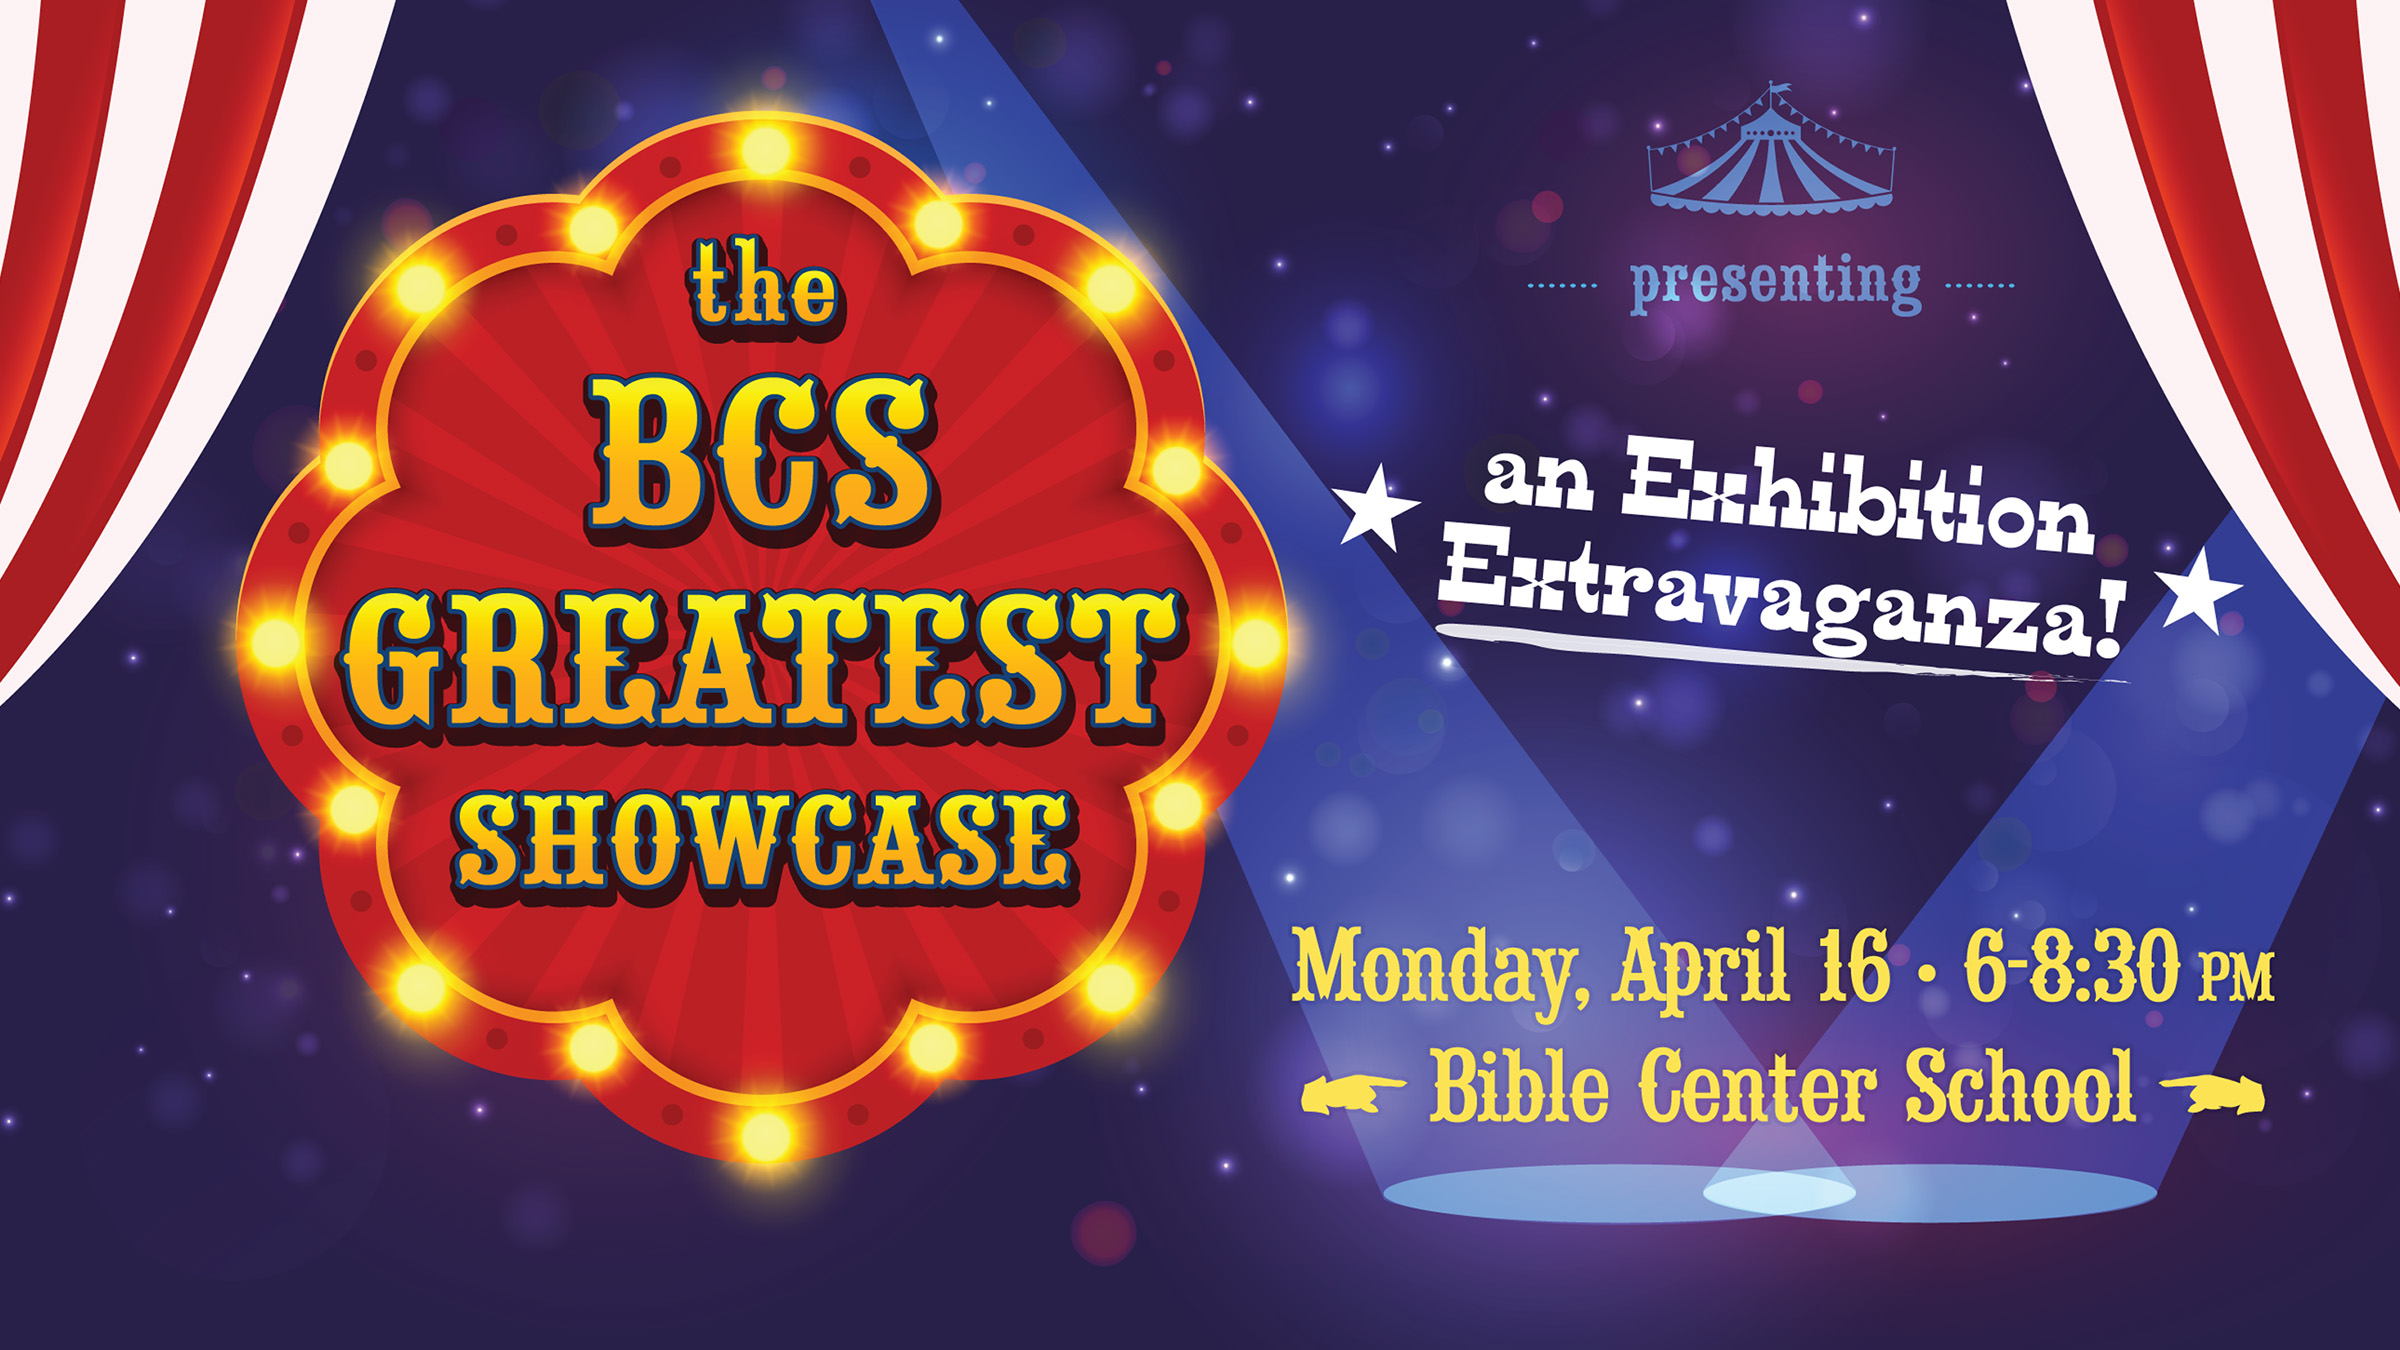 The Bible Center School Greatest Showcase